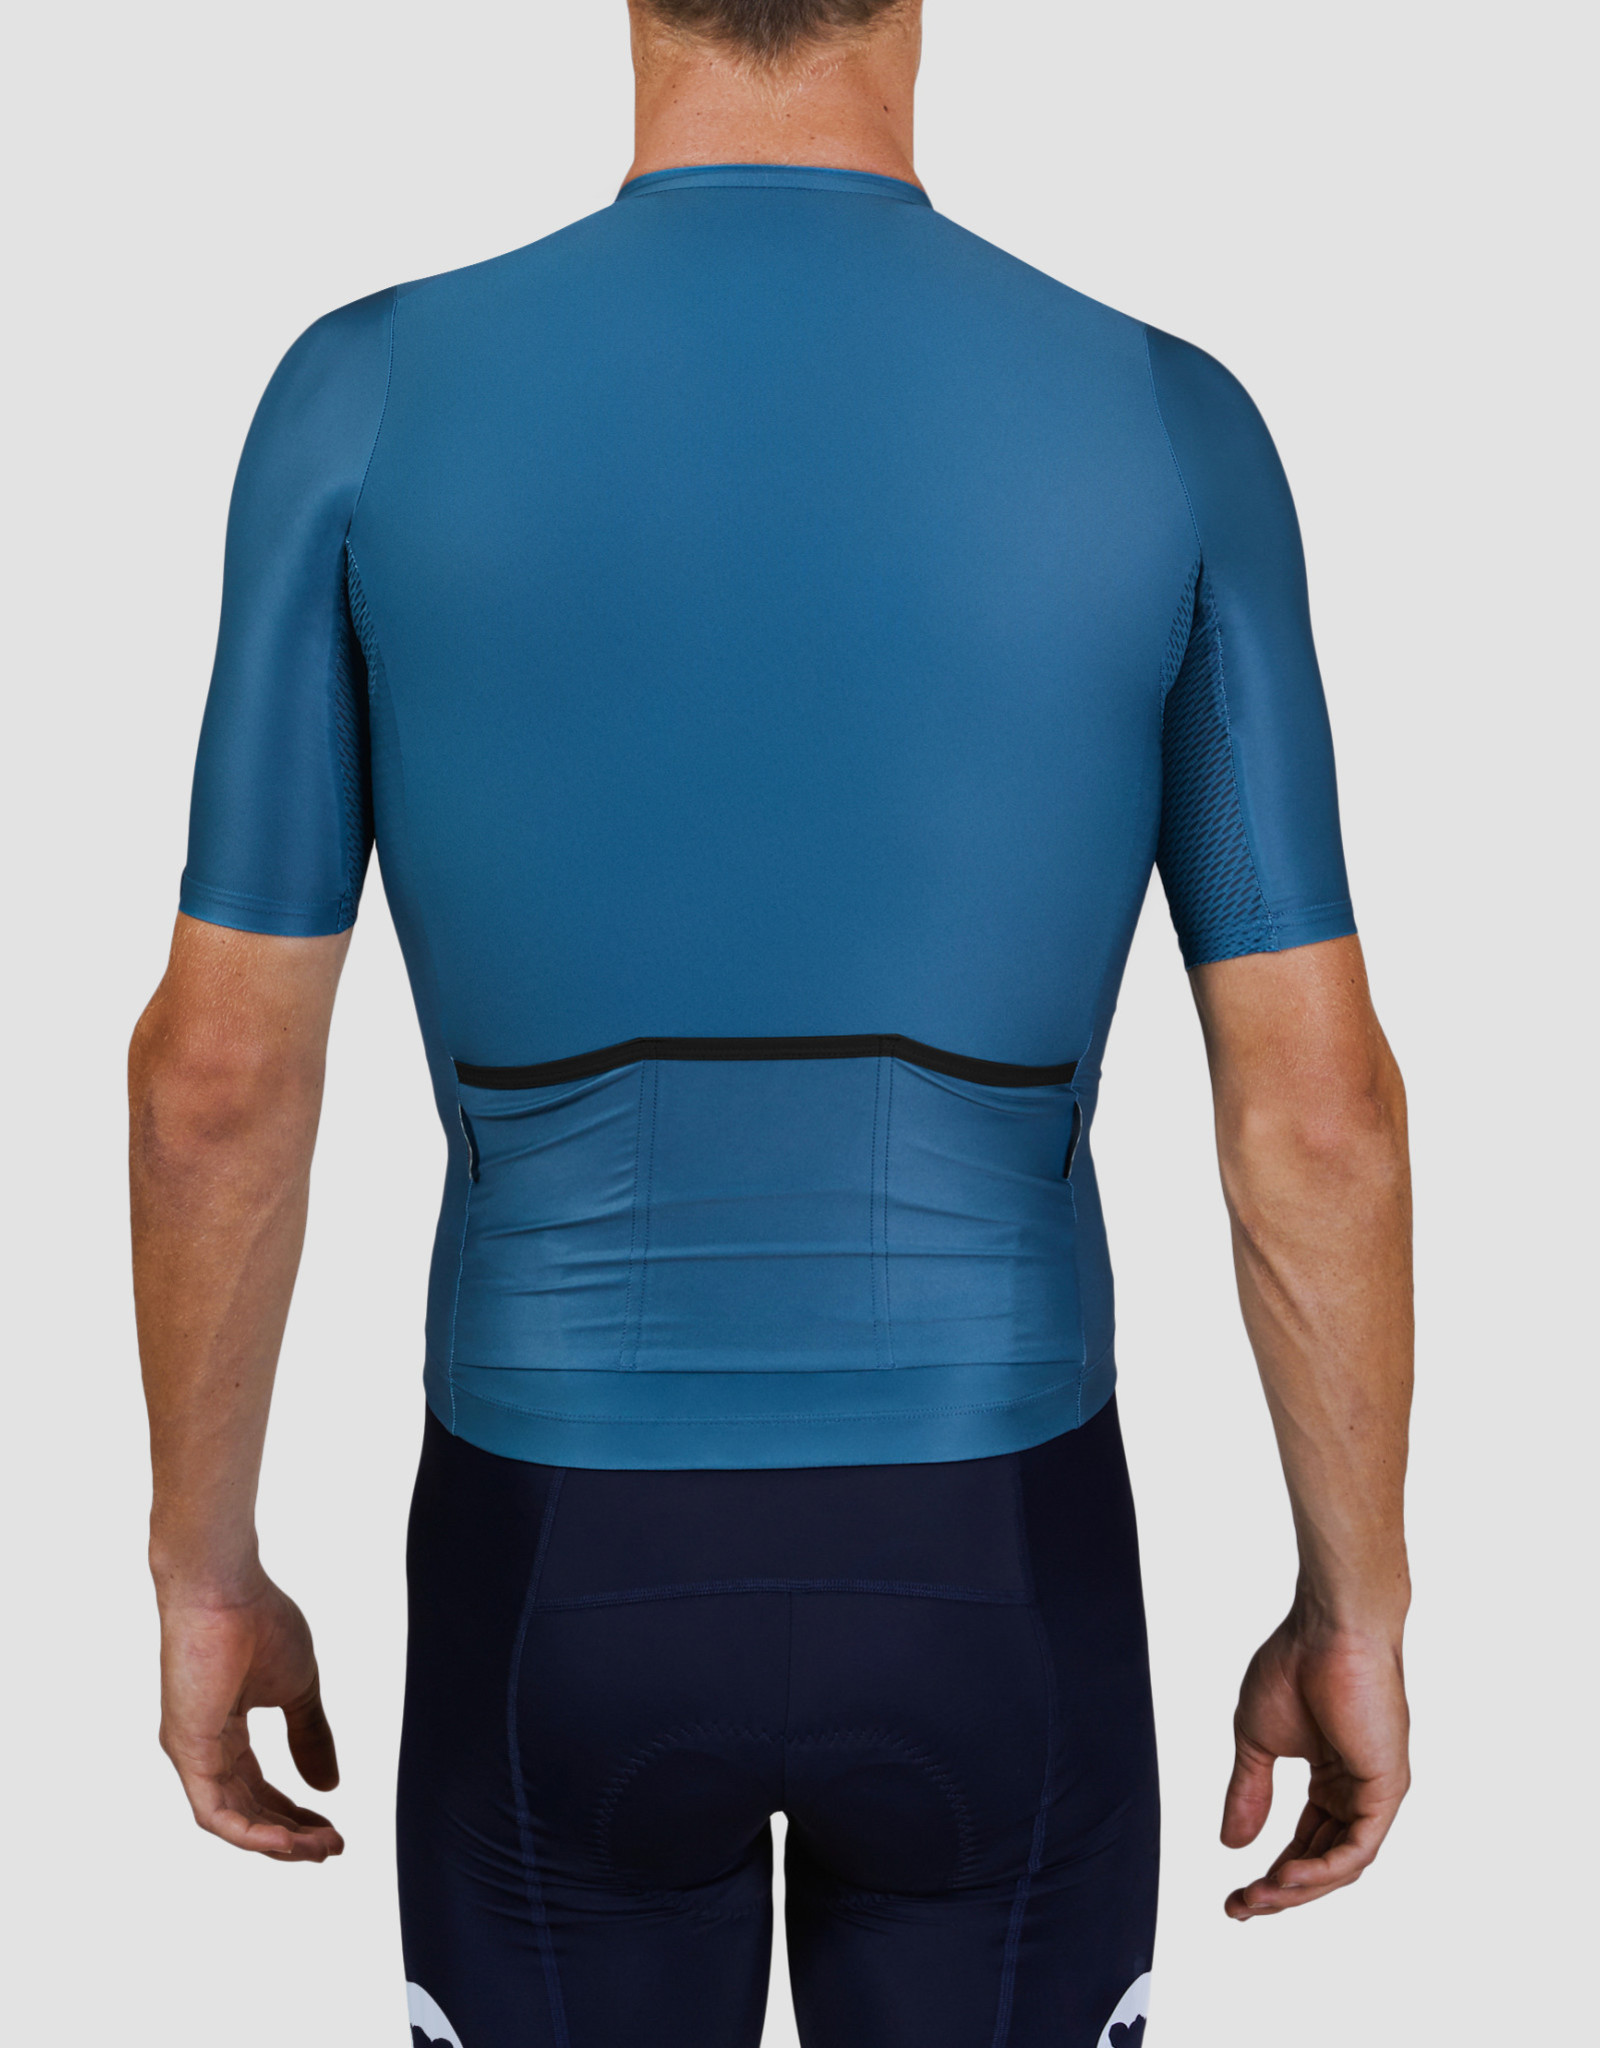 Black Sheep Cycling Men's Essentials TEAM Jersey - Block Stone